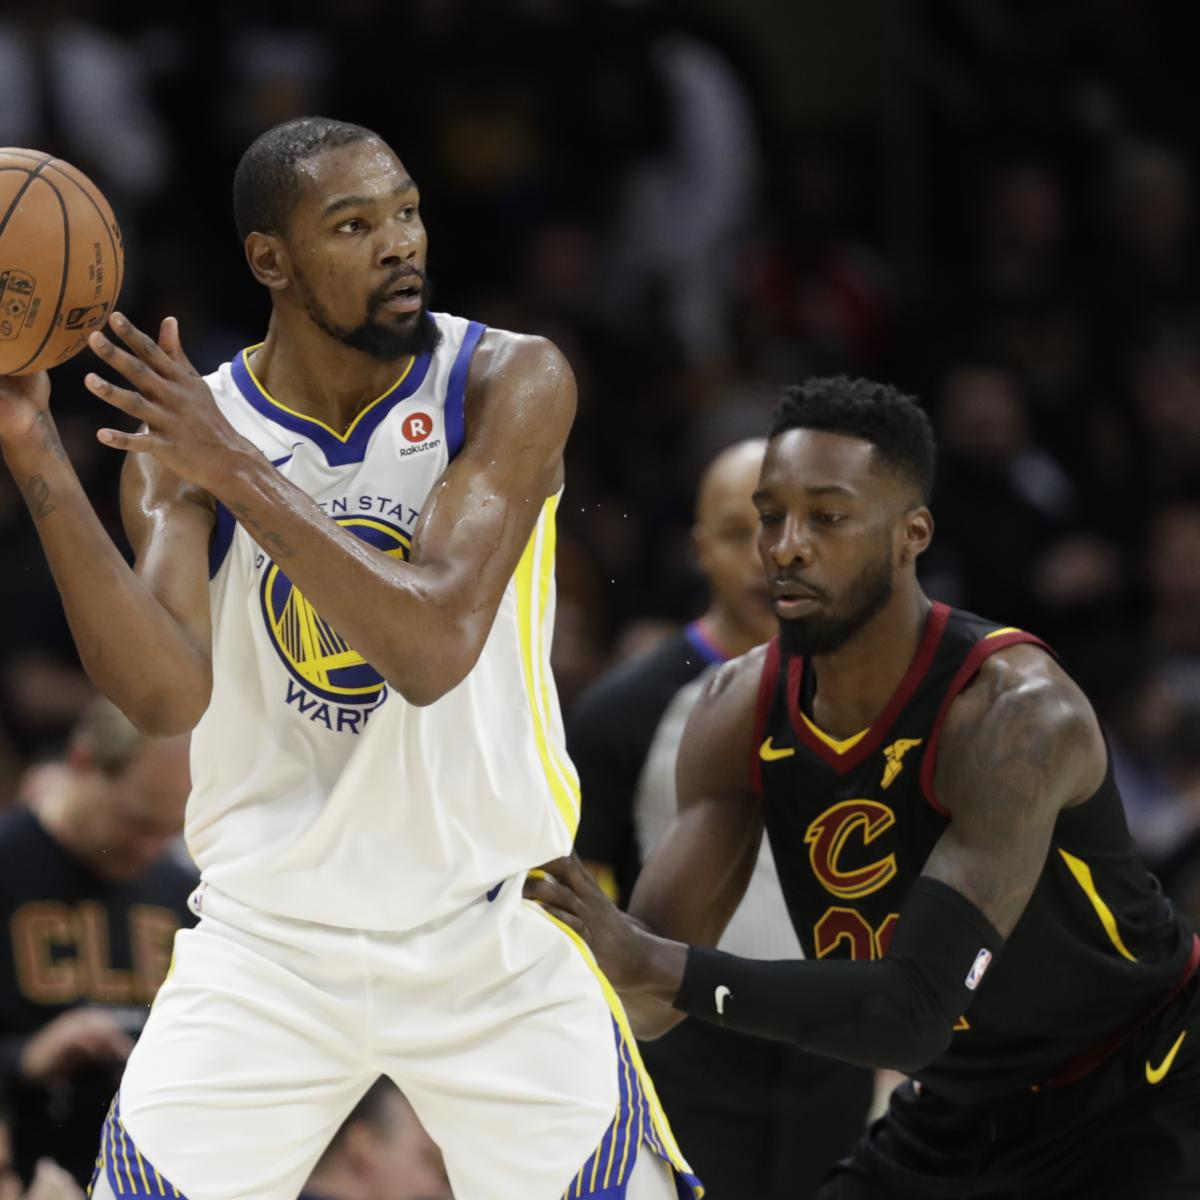 Warriors Vs. Cavaliers: Postgame Sound From Game 3 Of 2018